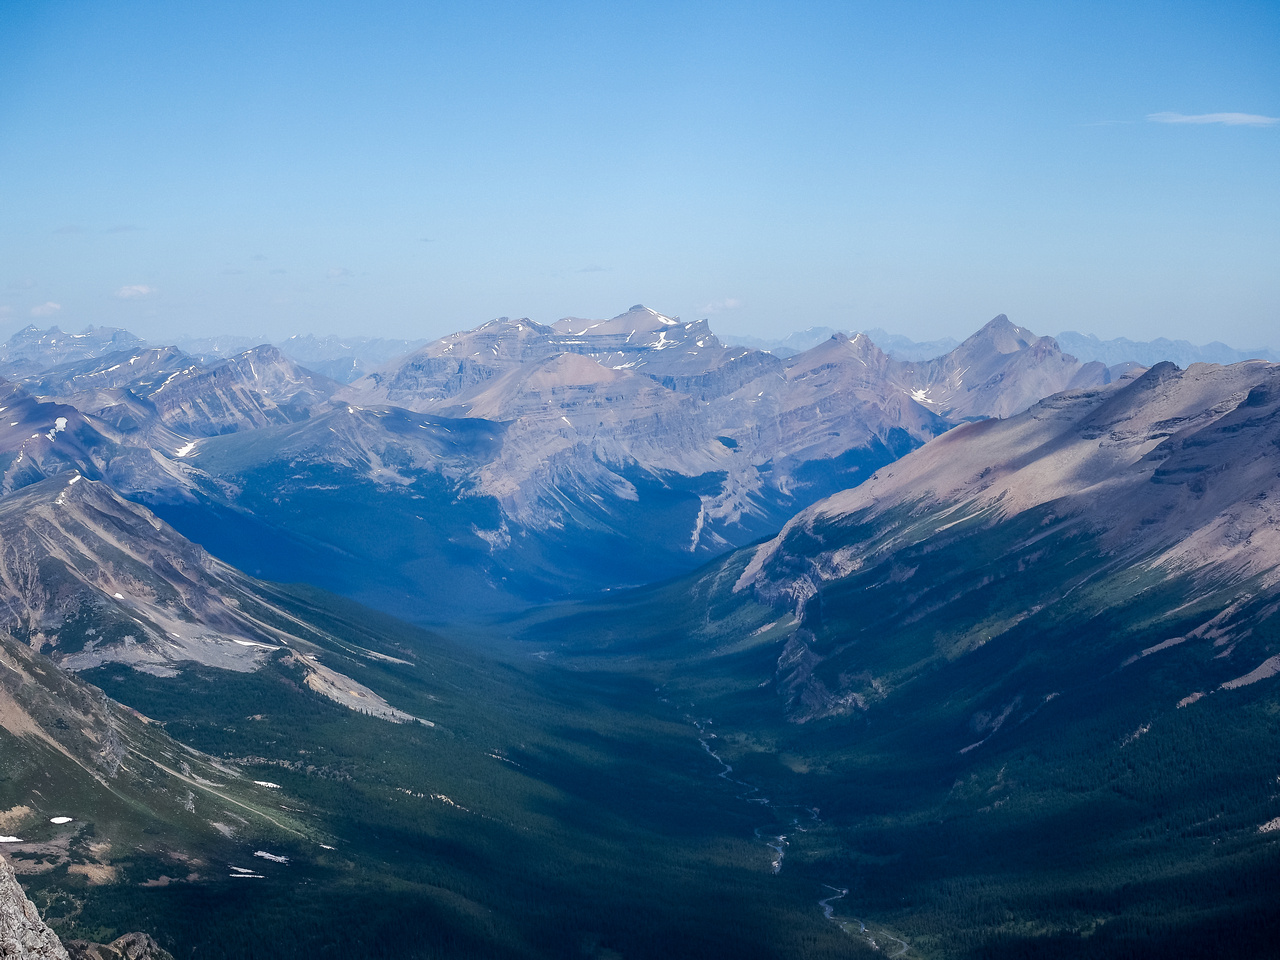 Loudon and Siffleur Mountains loom over the head of the Siffleur River Valley to the north.